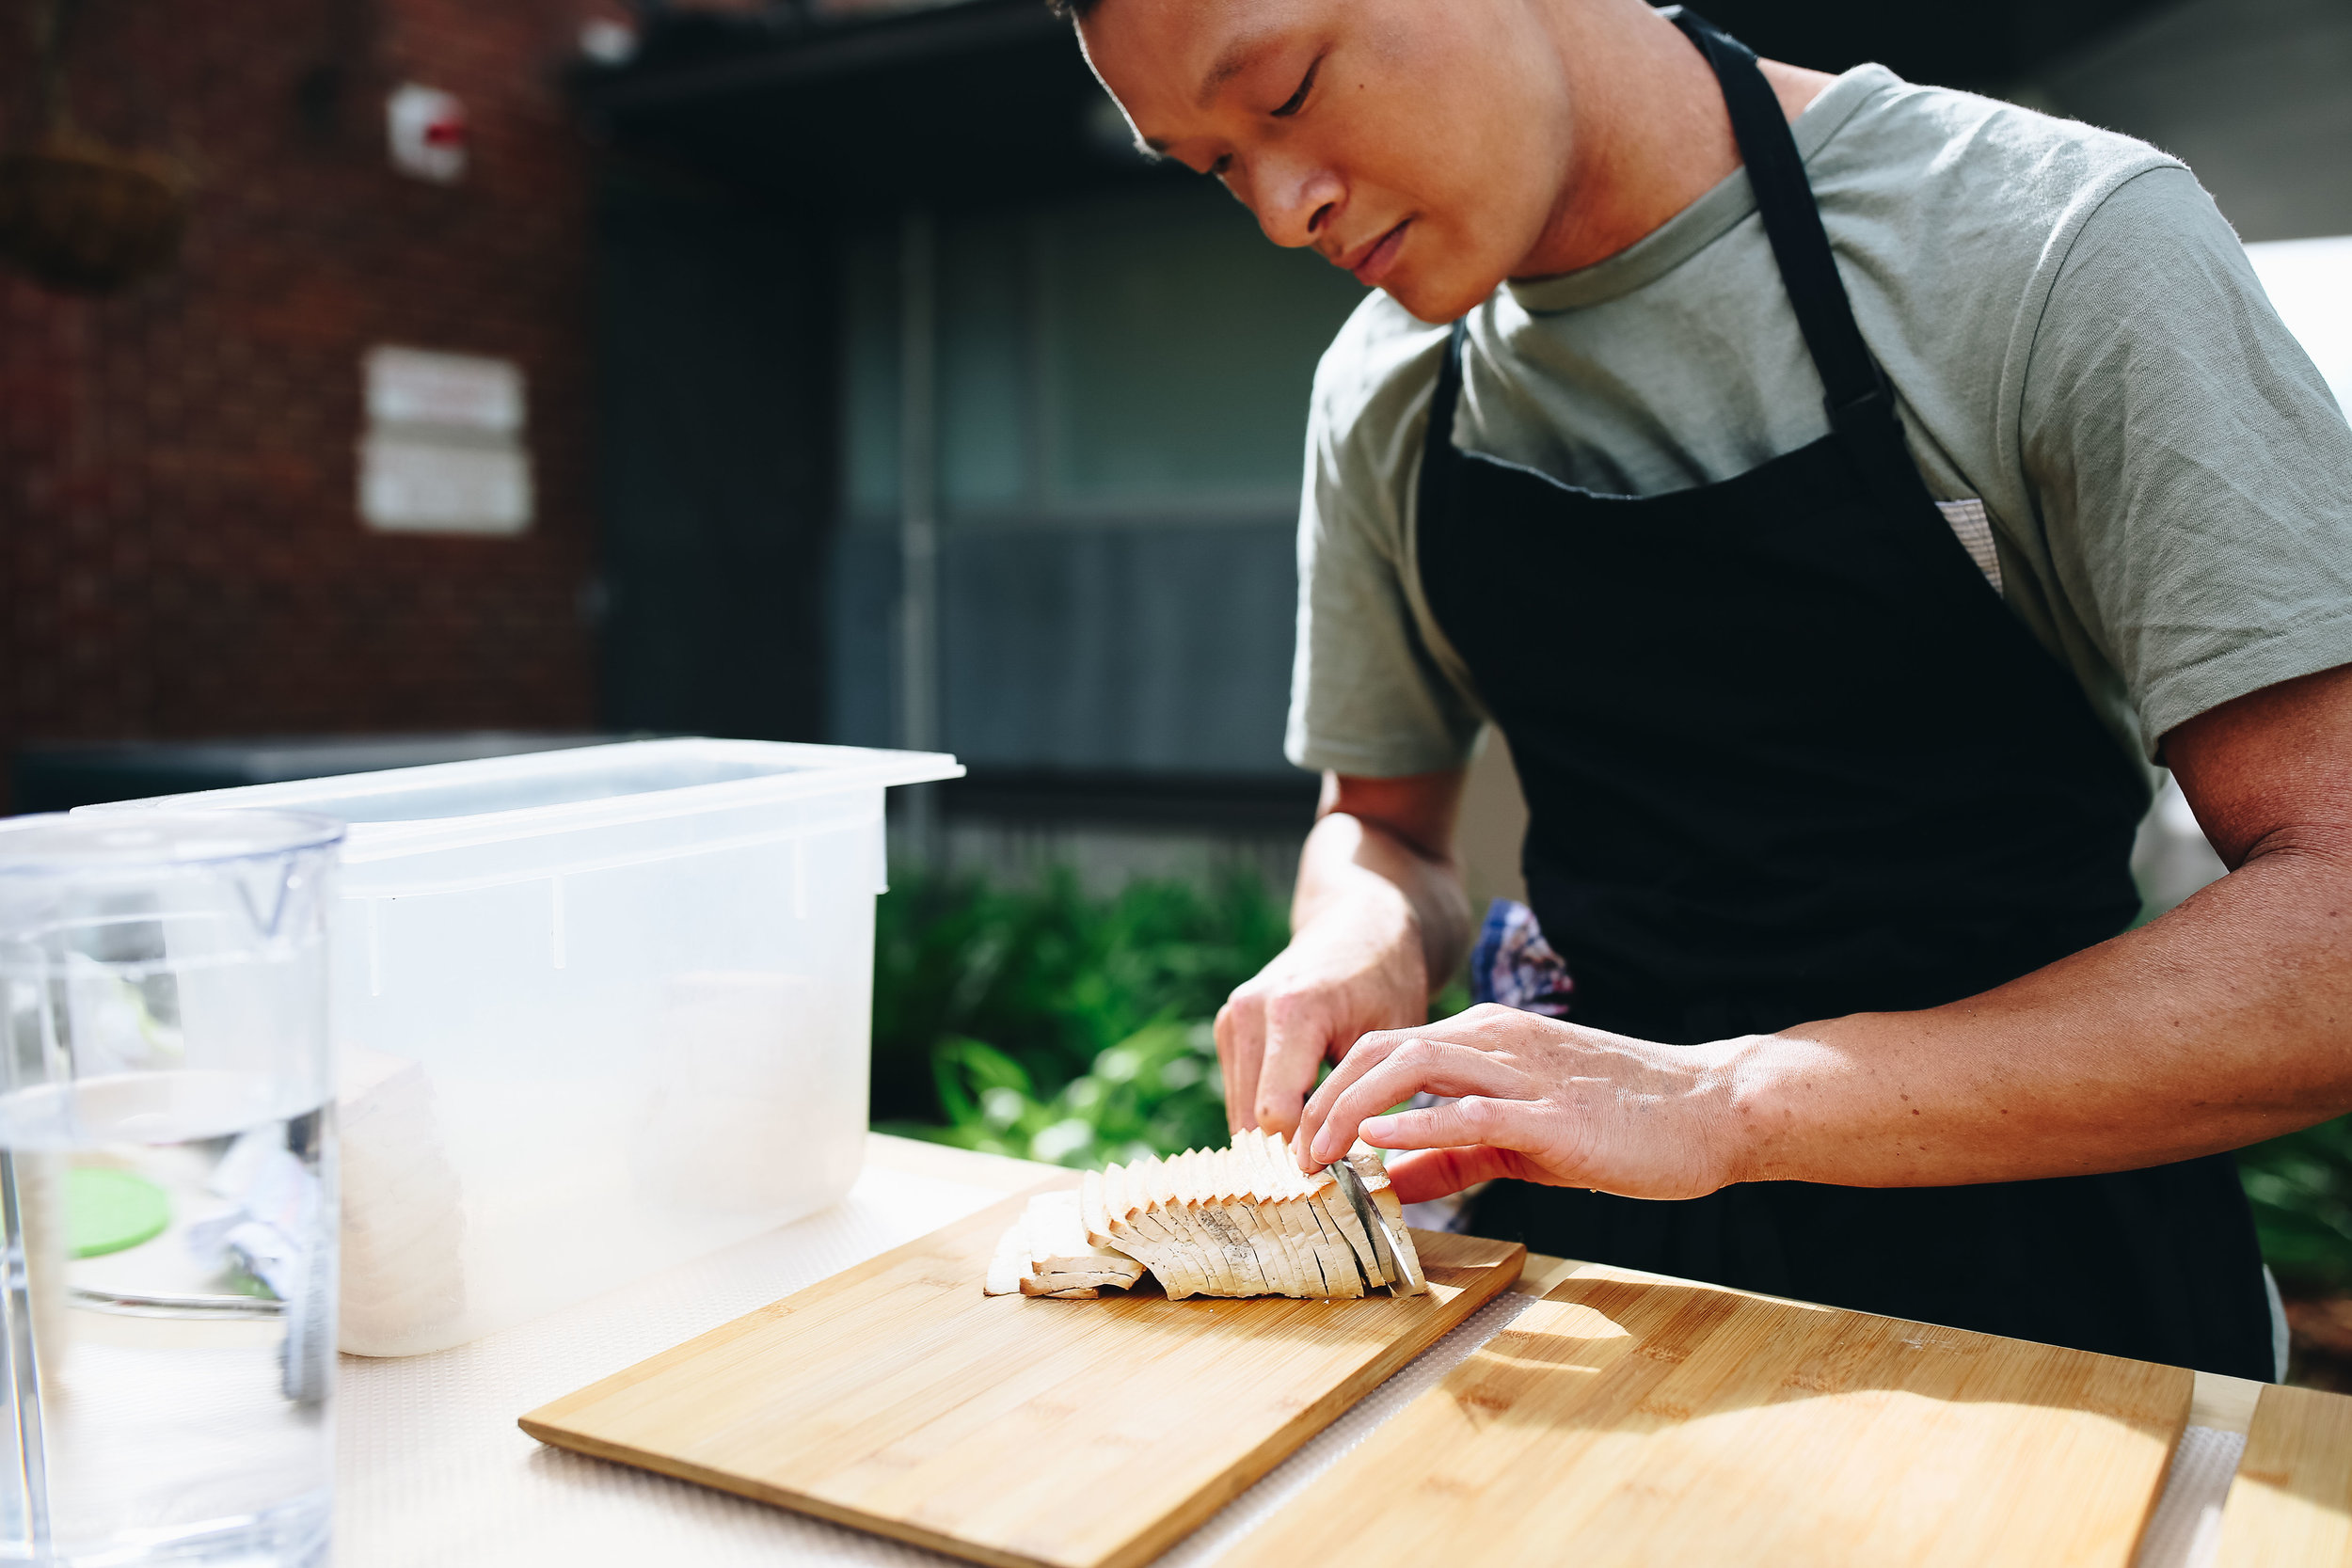 Julian preparing some smoked tofu to be incorporated into his rice paper rolls later.